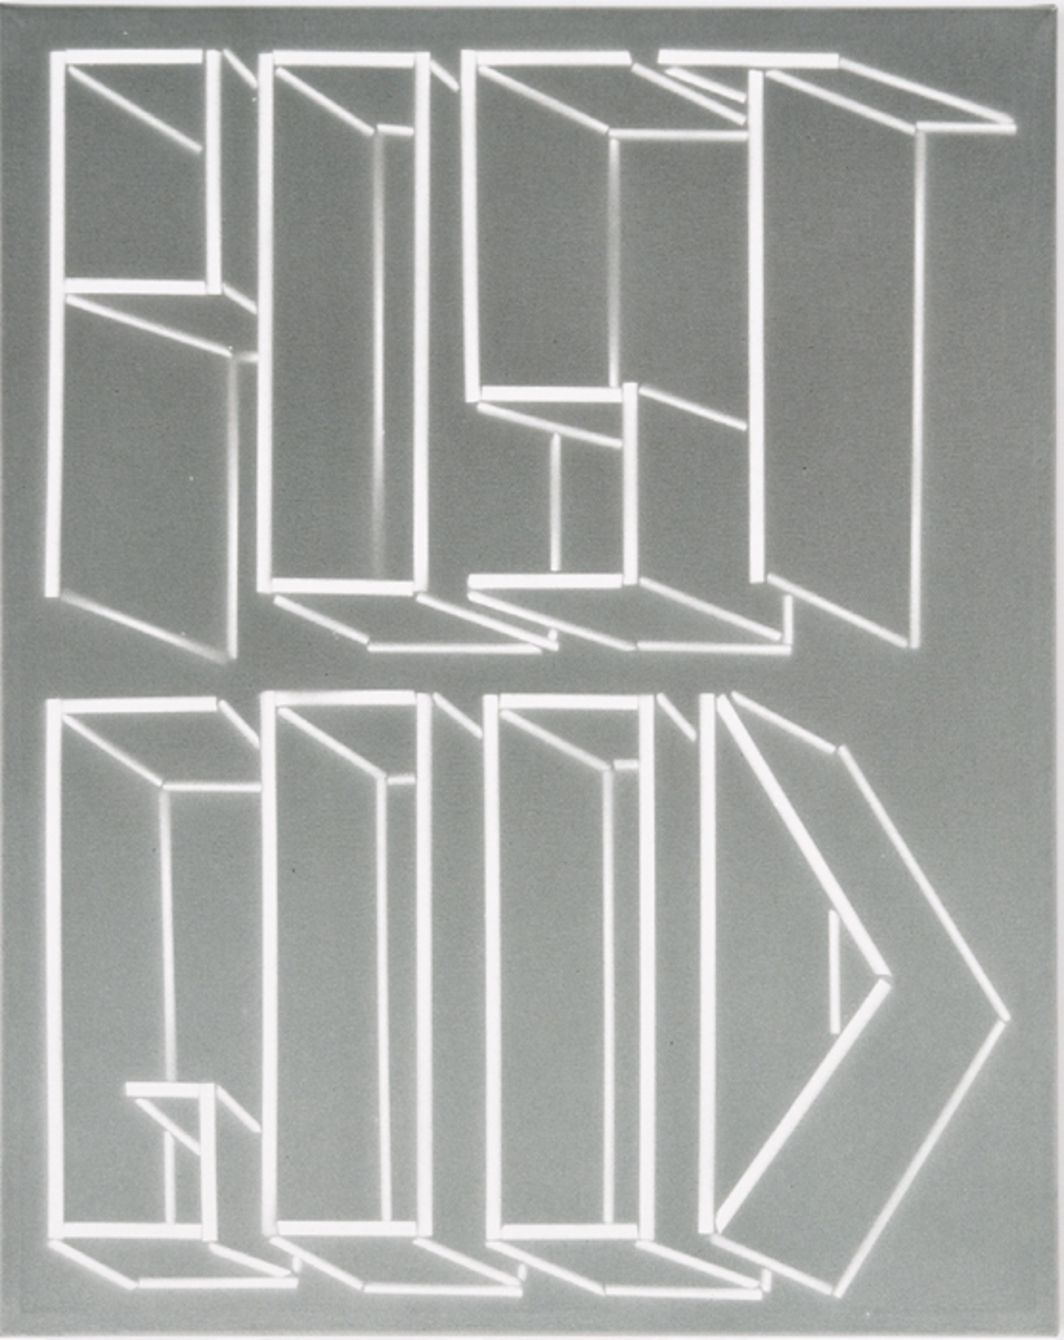 "Scott Reeder, Post Good, 2013, acrylic on canvas, 20 x 16""."